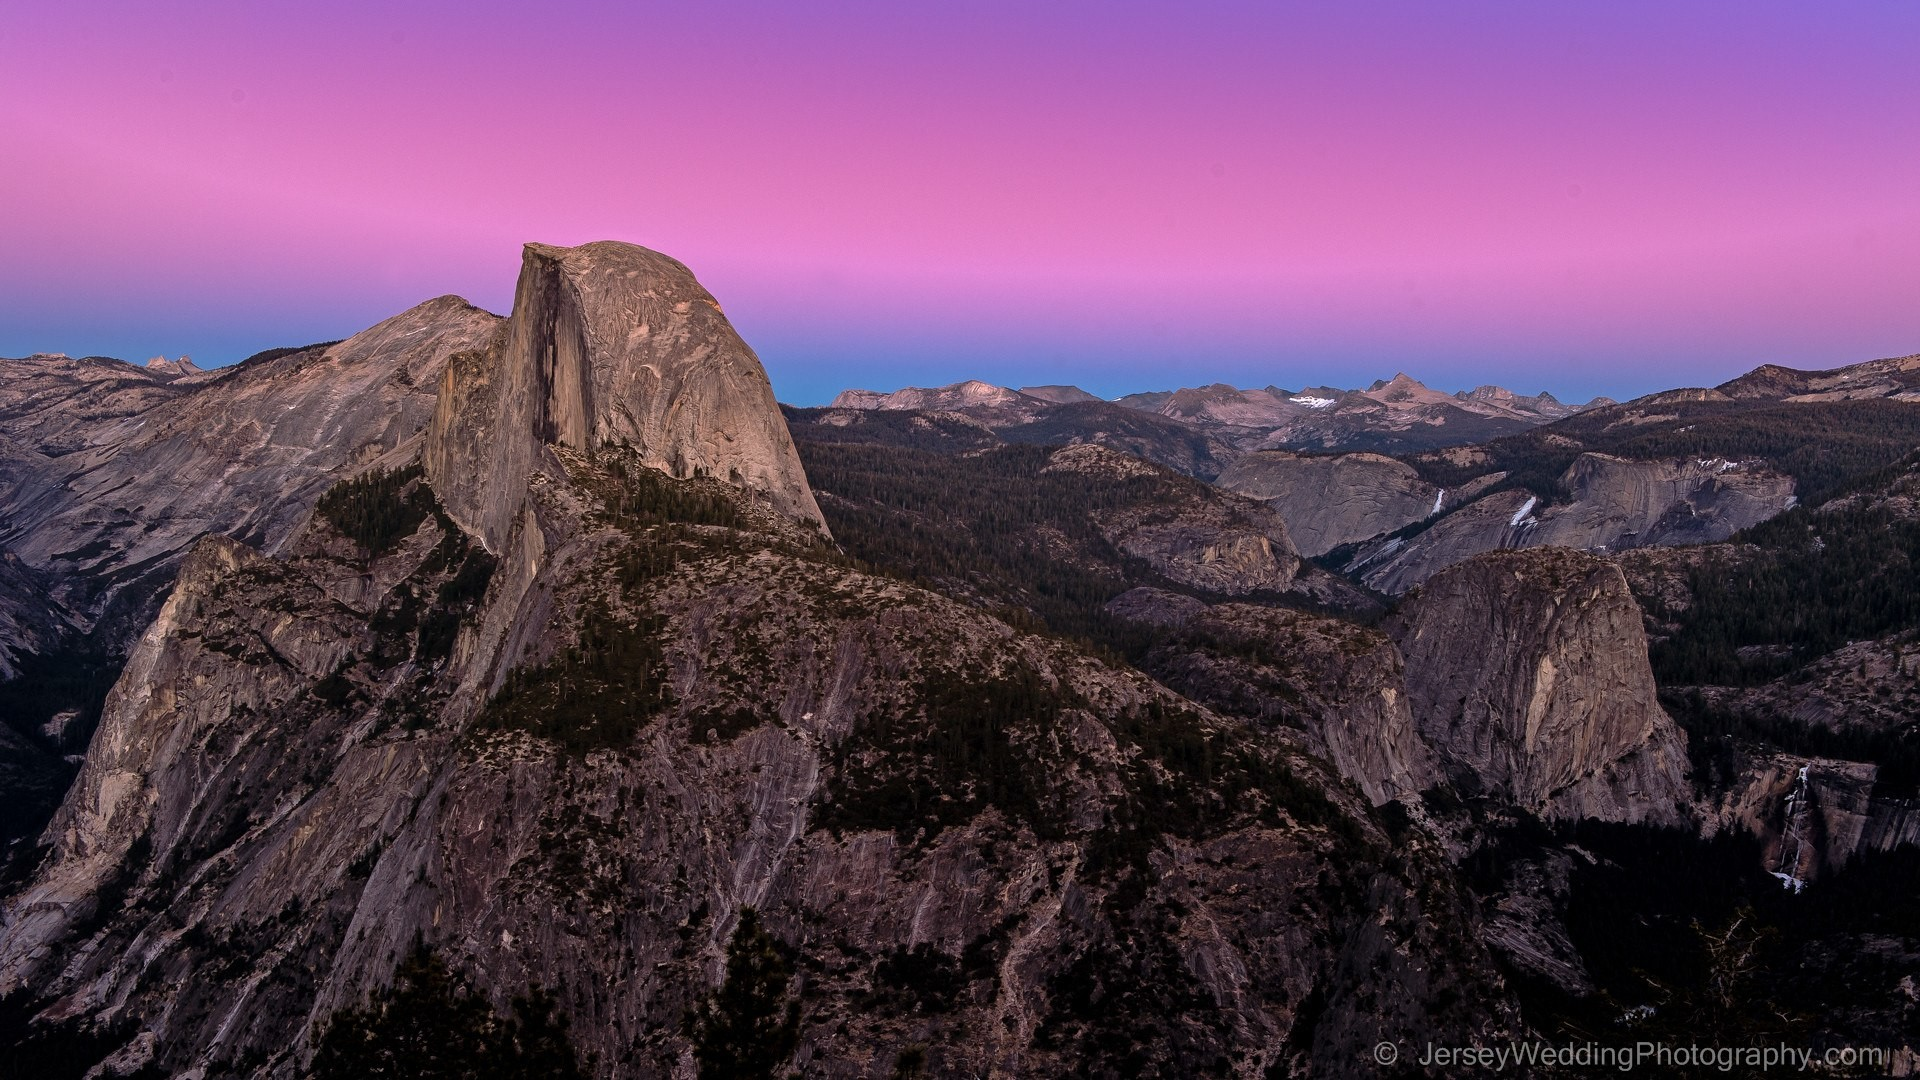 1920x1080 Yosemite Mountain Landscape Wallpaper HD 16 High Resolution Wallpaper .